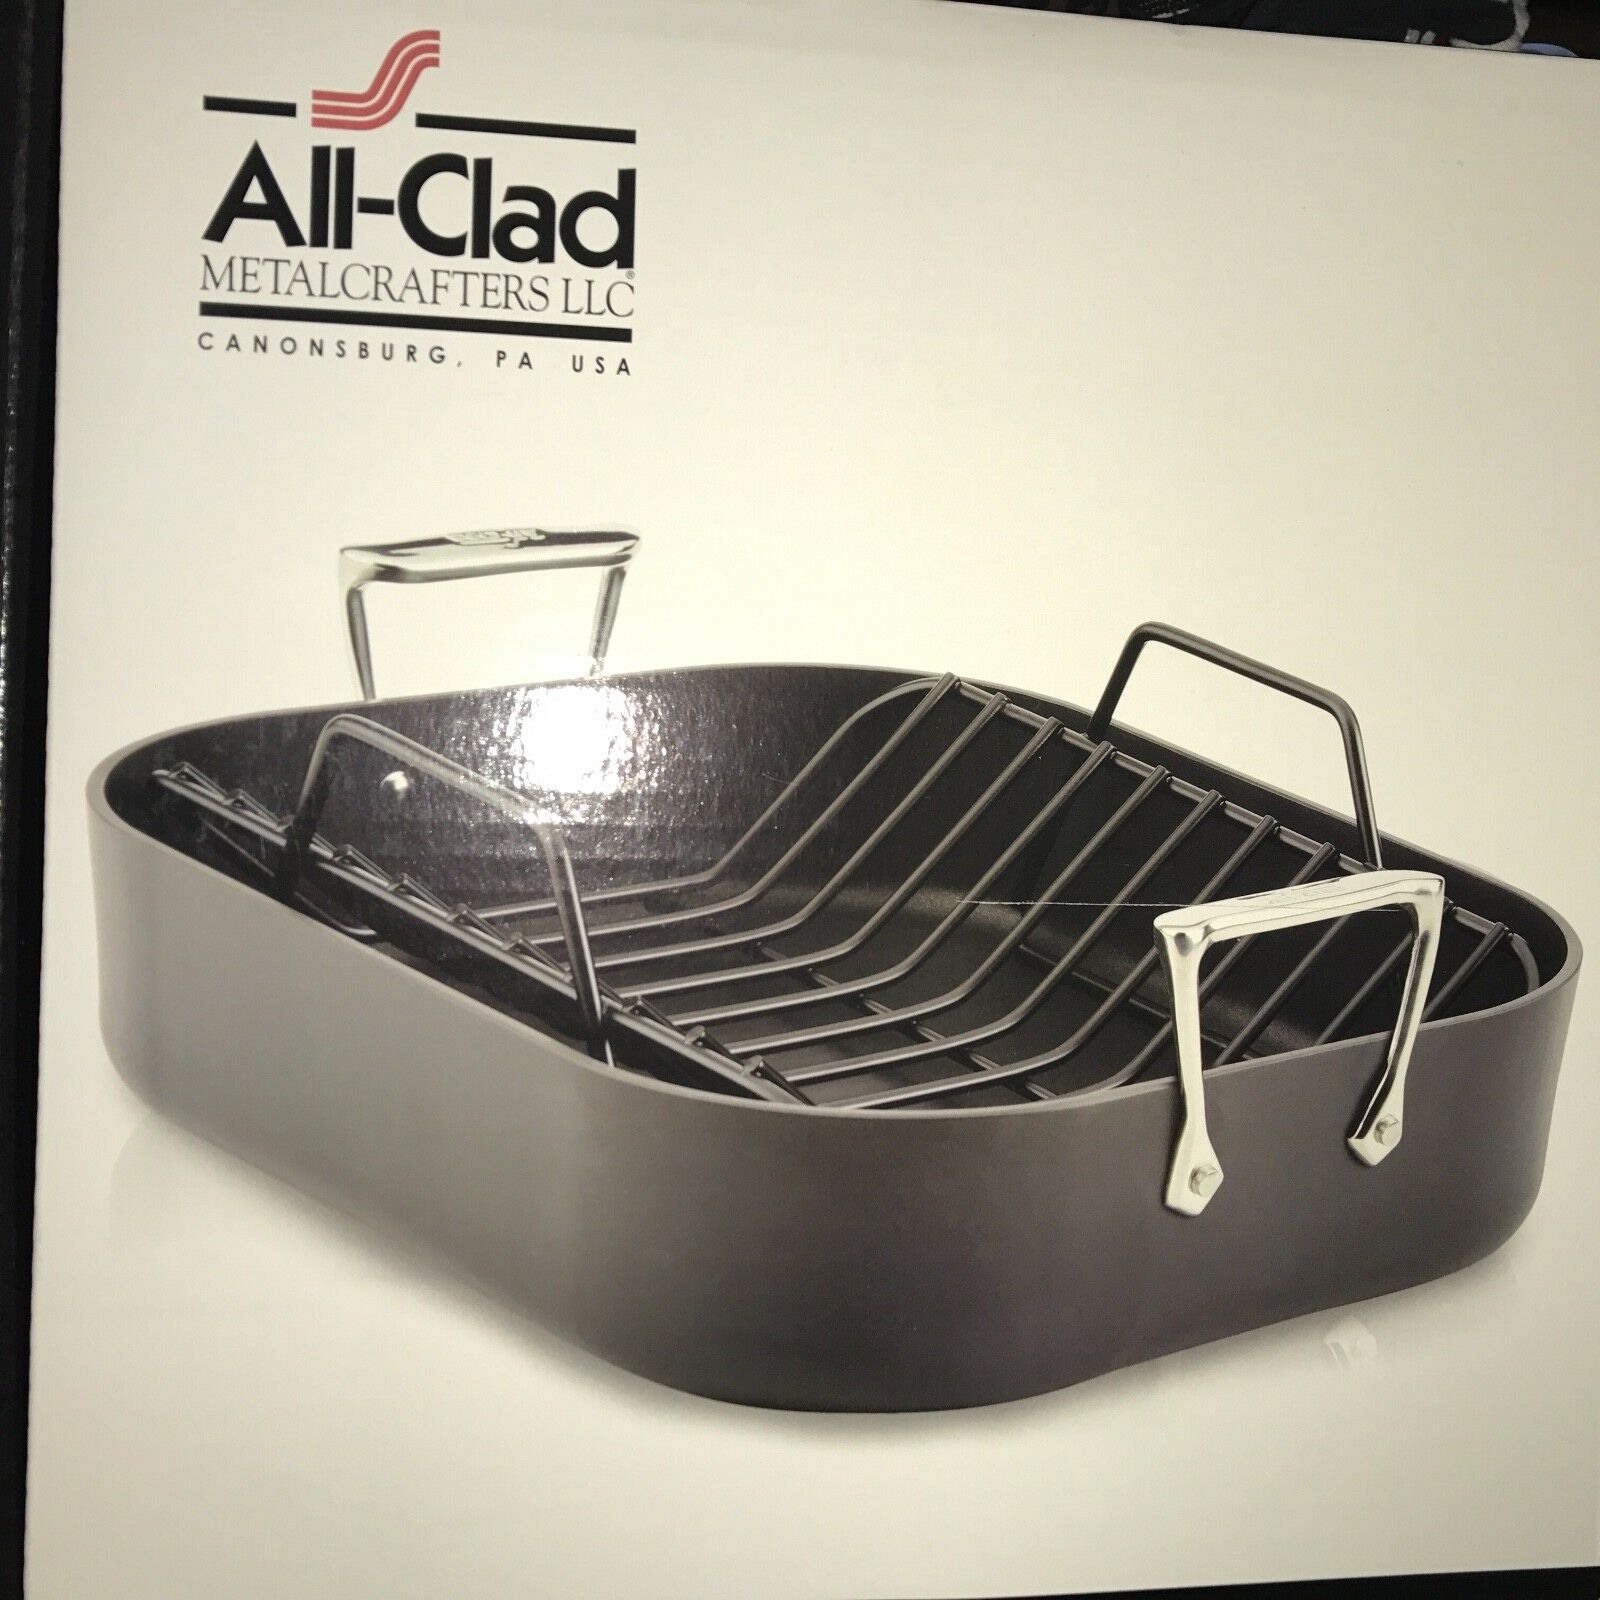 All-Clad Hard Anodized Roaster with Rack